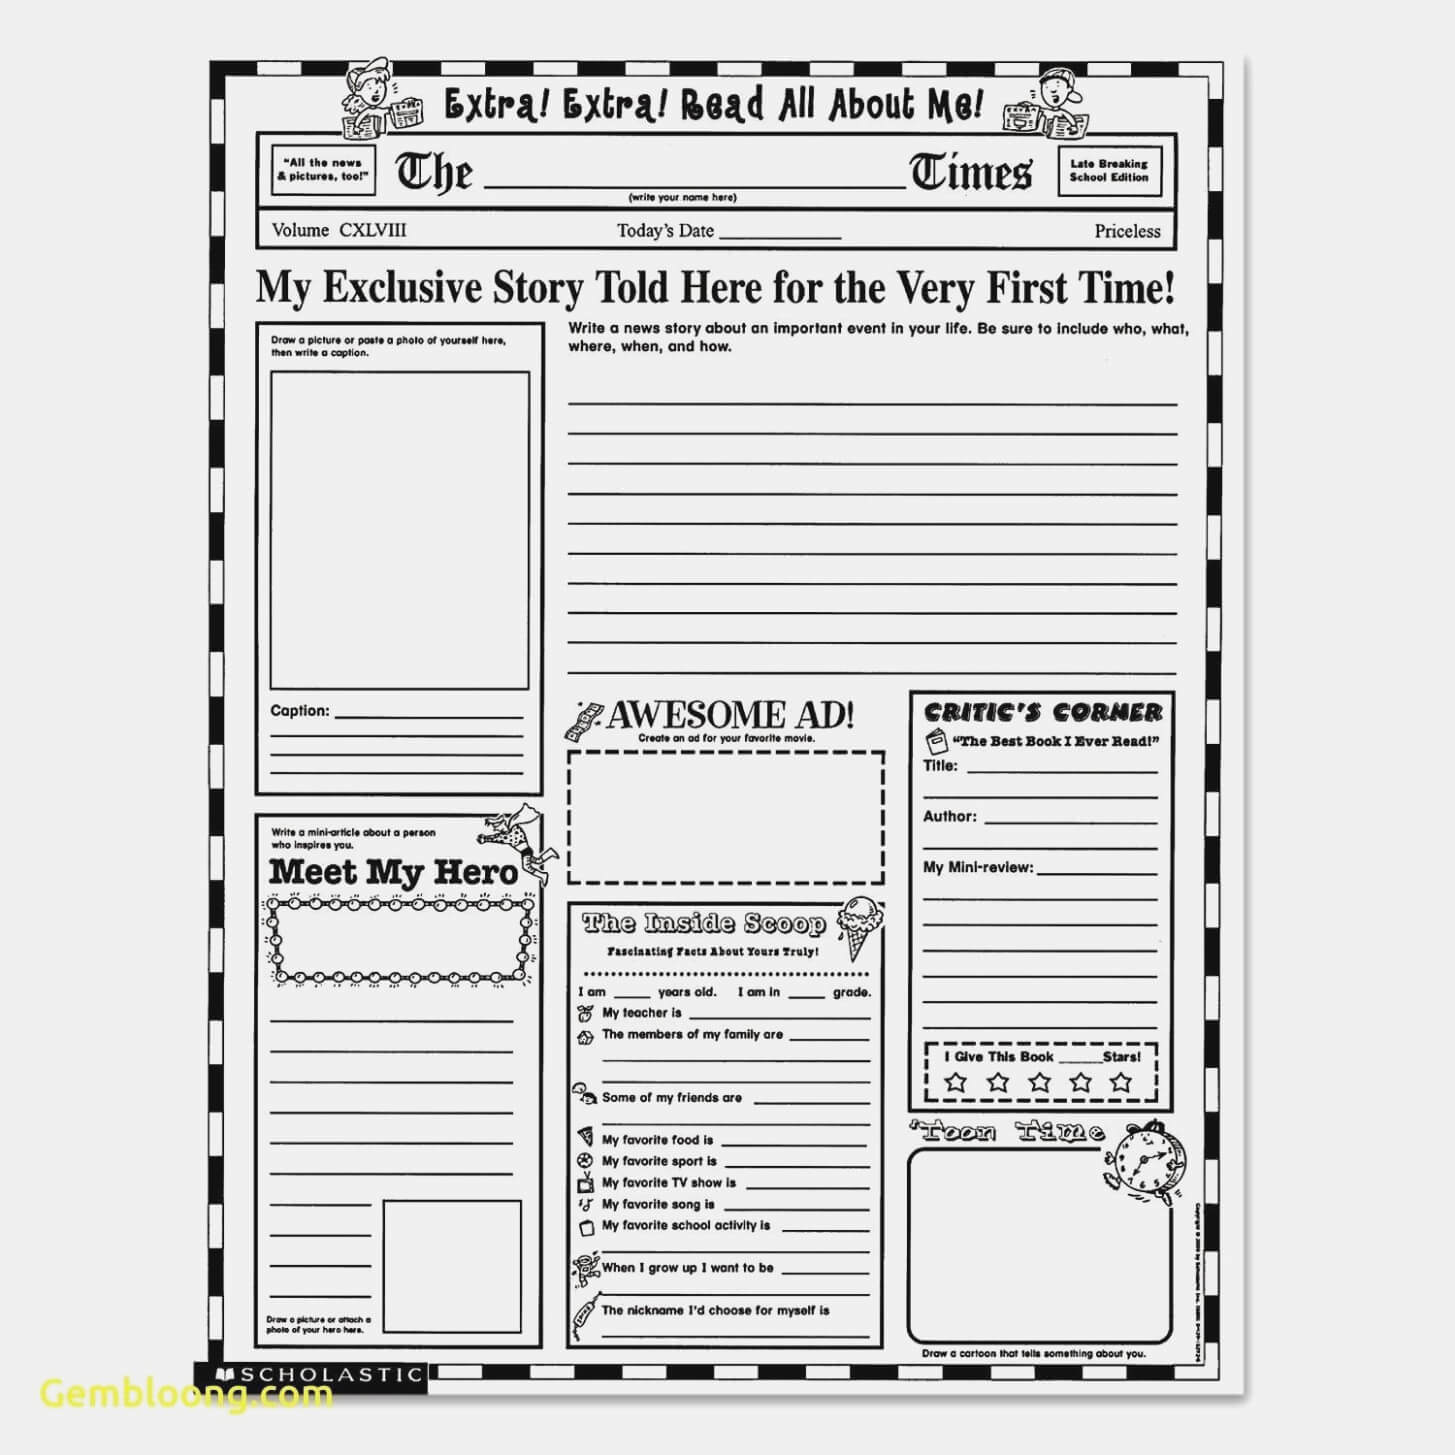 12 Per Page Label Template Nice Labels 12 Per Sheet Template In Word Label Template 12 Per Sheet